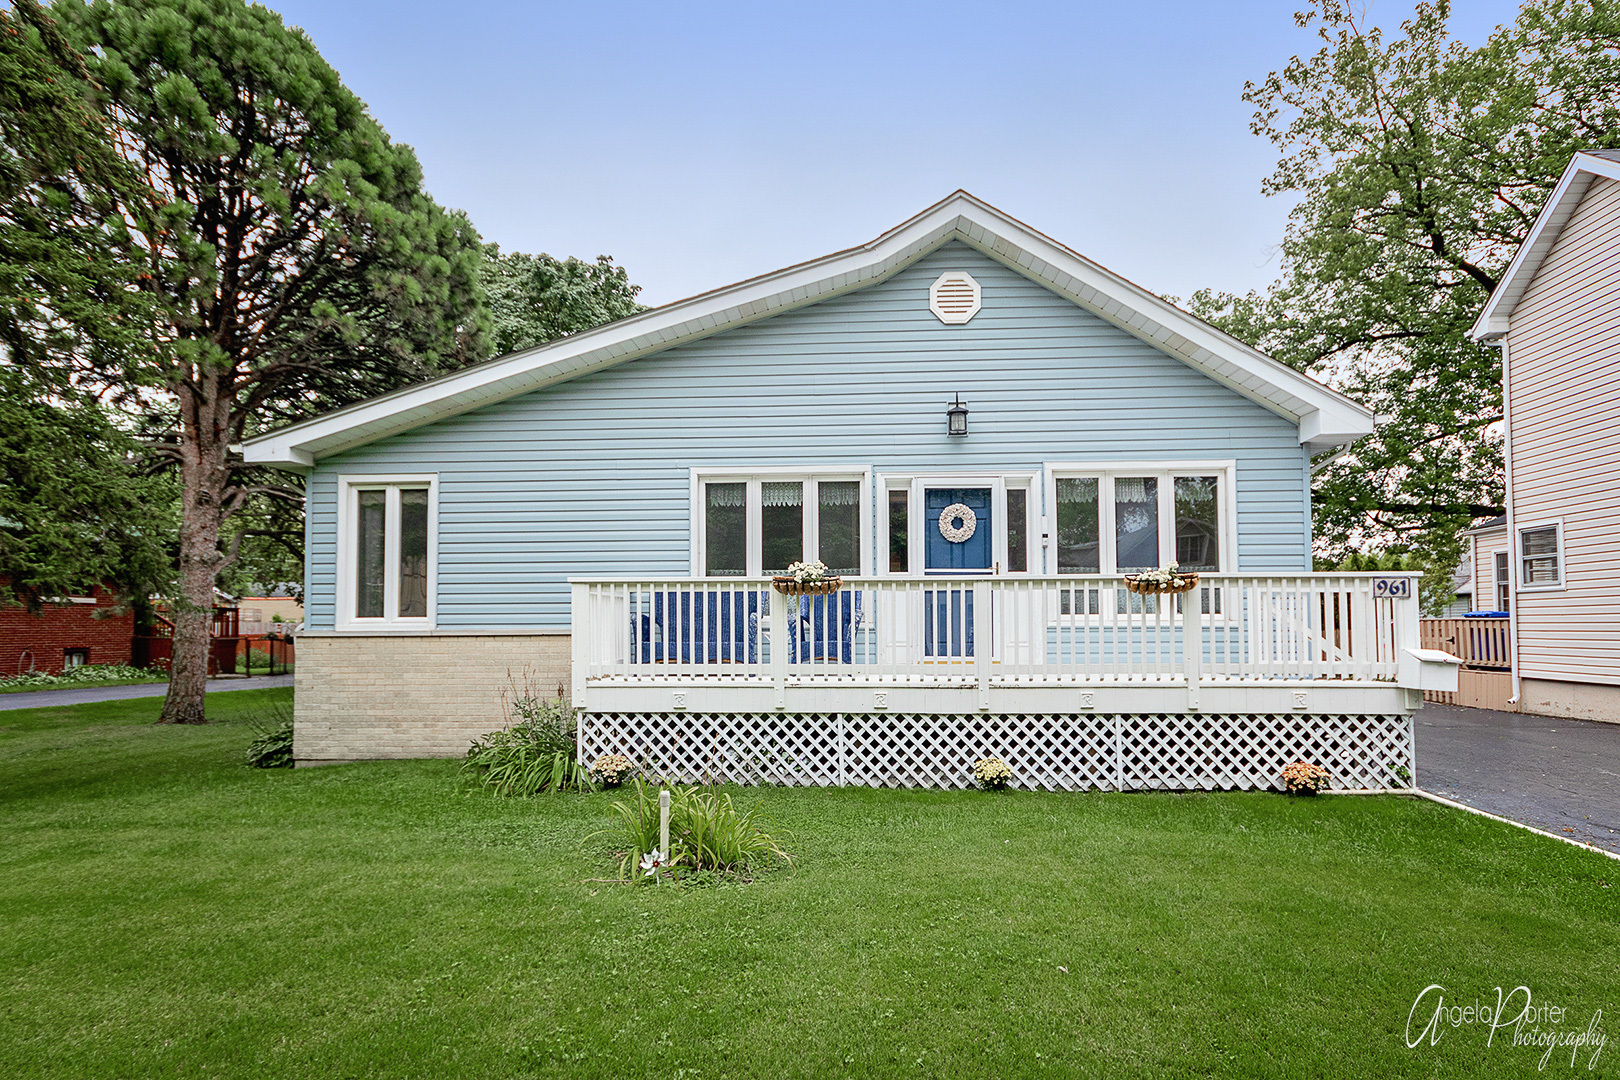 961 Walter Avenue, Des Plaines in Cook County, IL 60016 Home for Sale